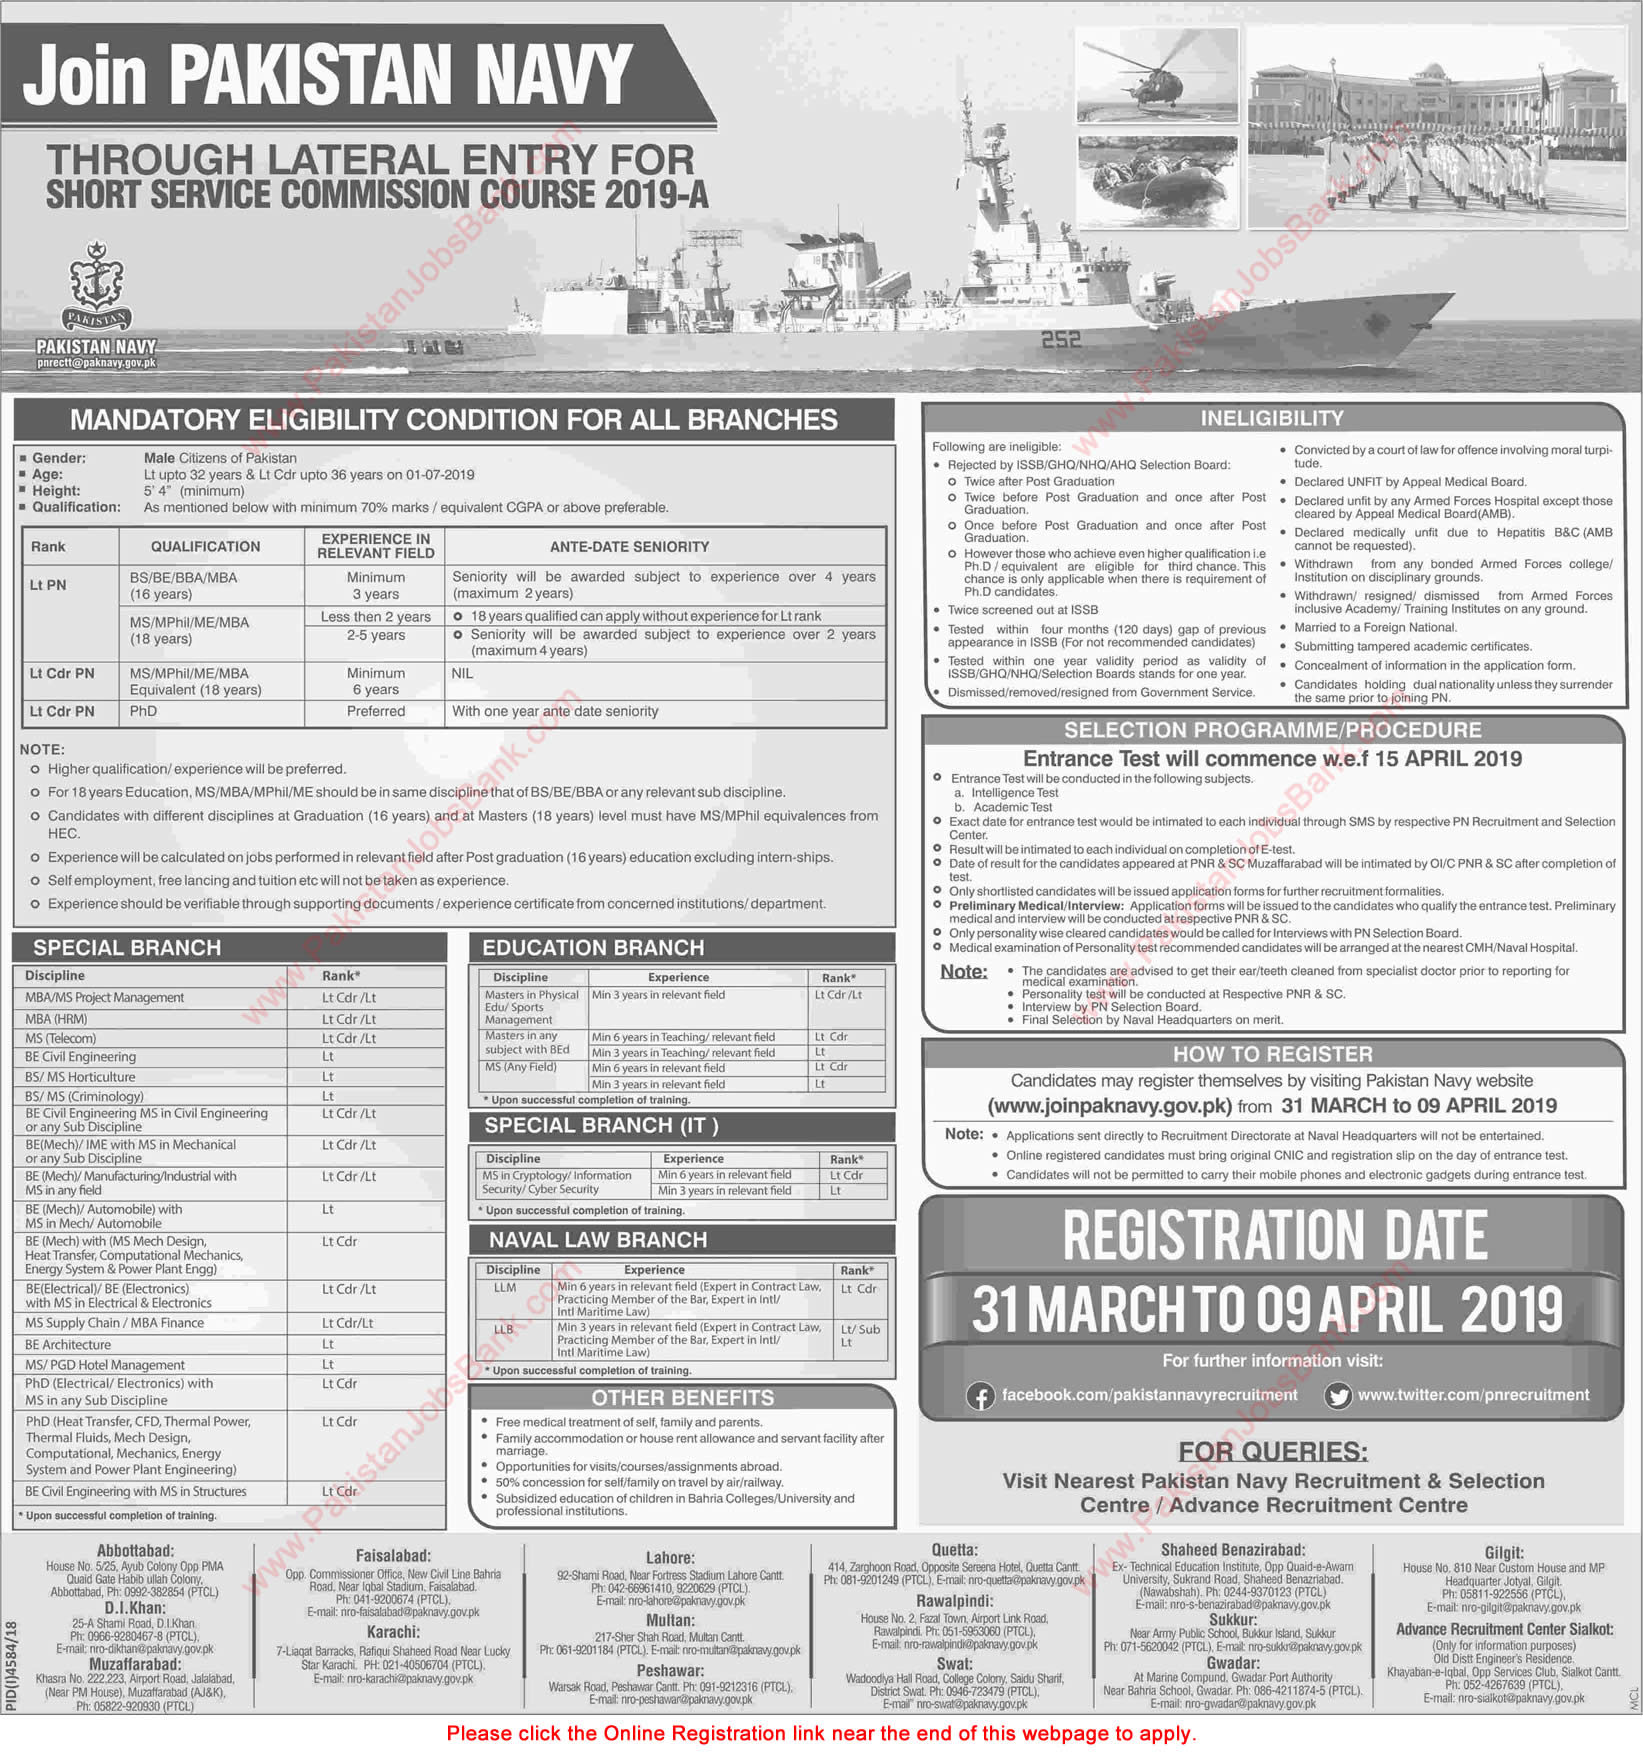 Join Pakistan Navy through Short Service Commission Course 2019-A Online Registration Latest